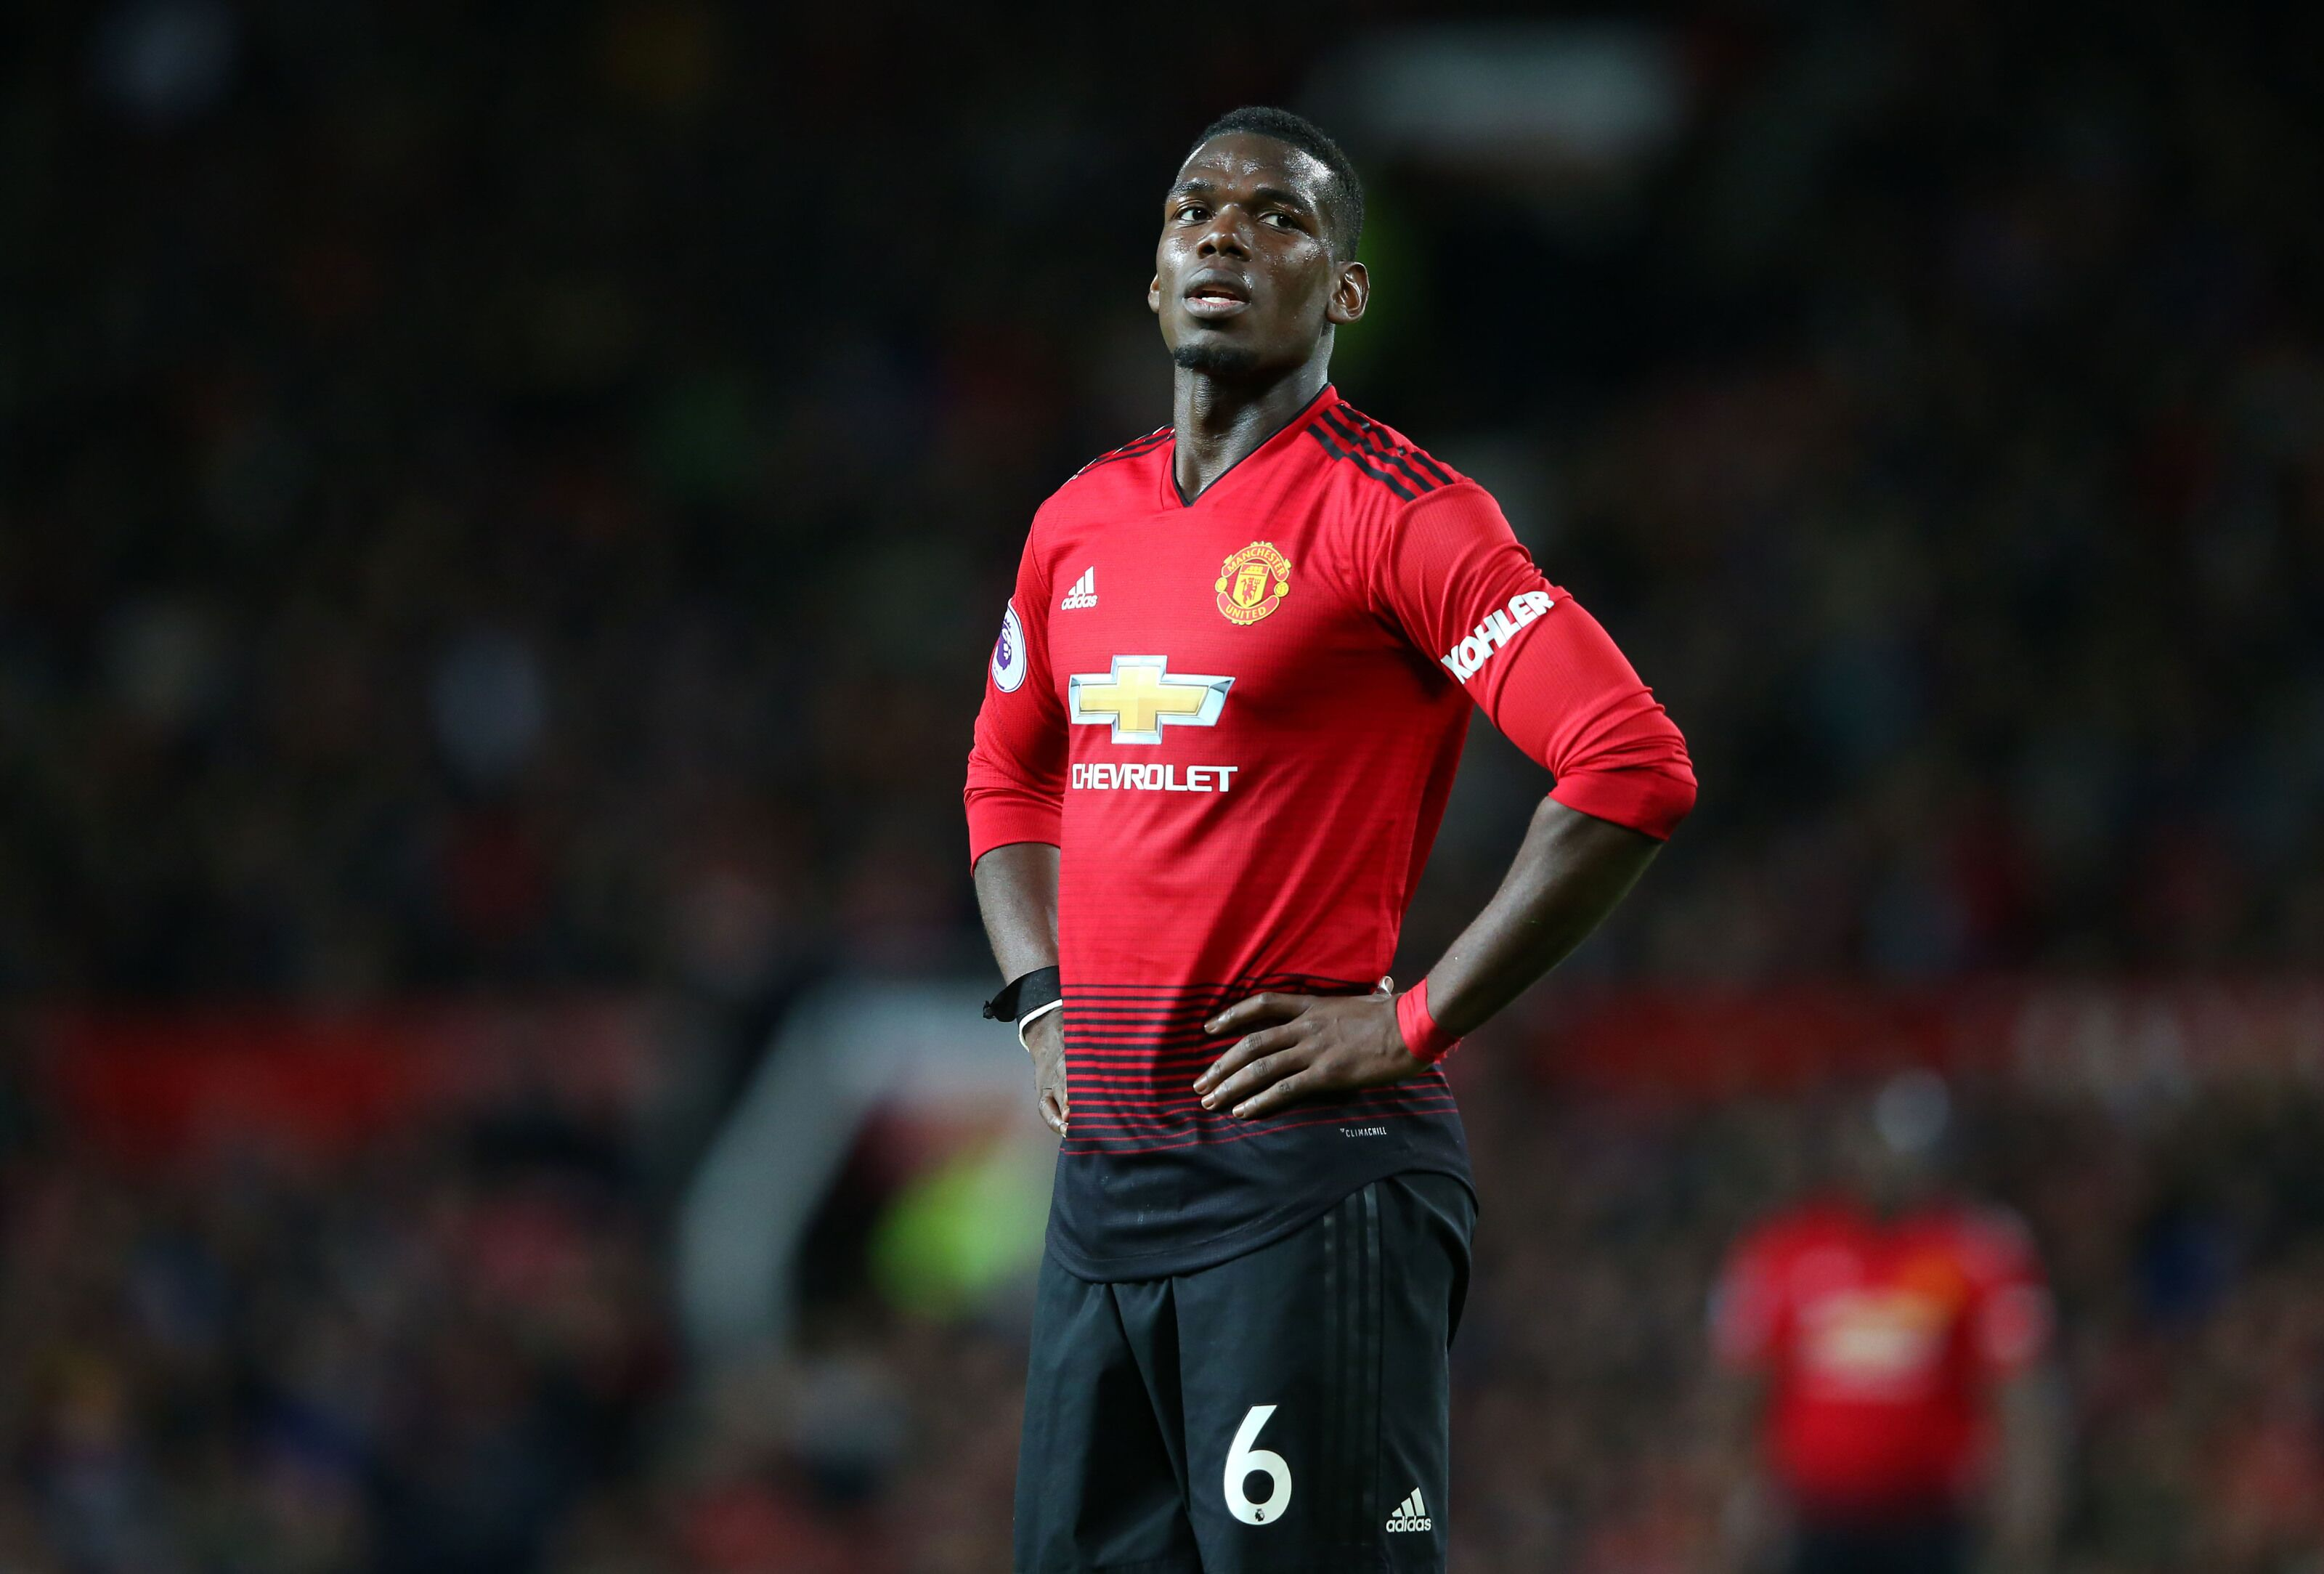 It's time for Manchester United and Paul Pogba to end their unhappy alliance